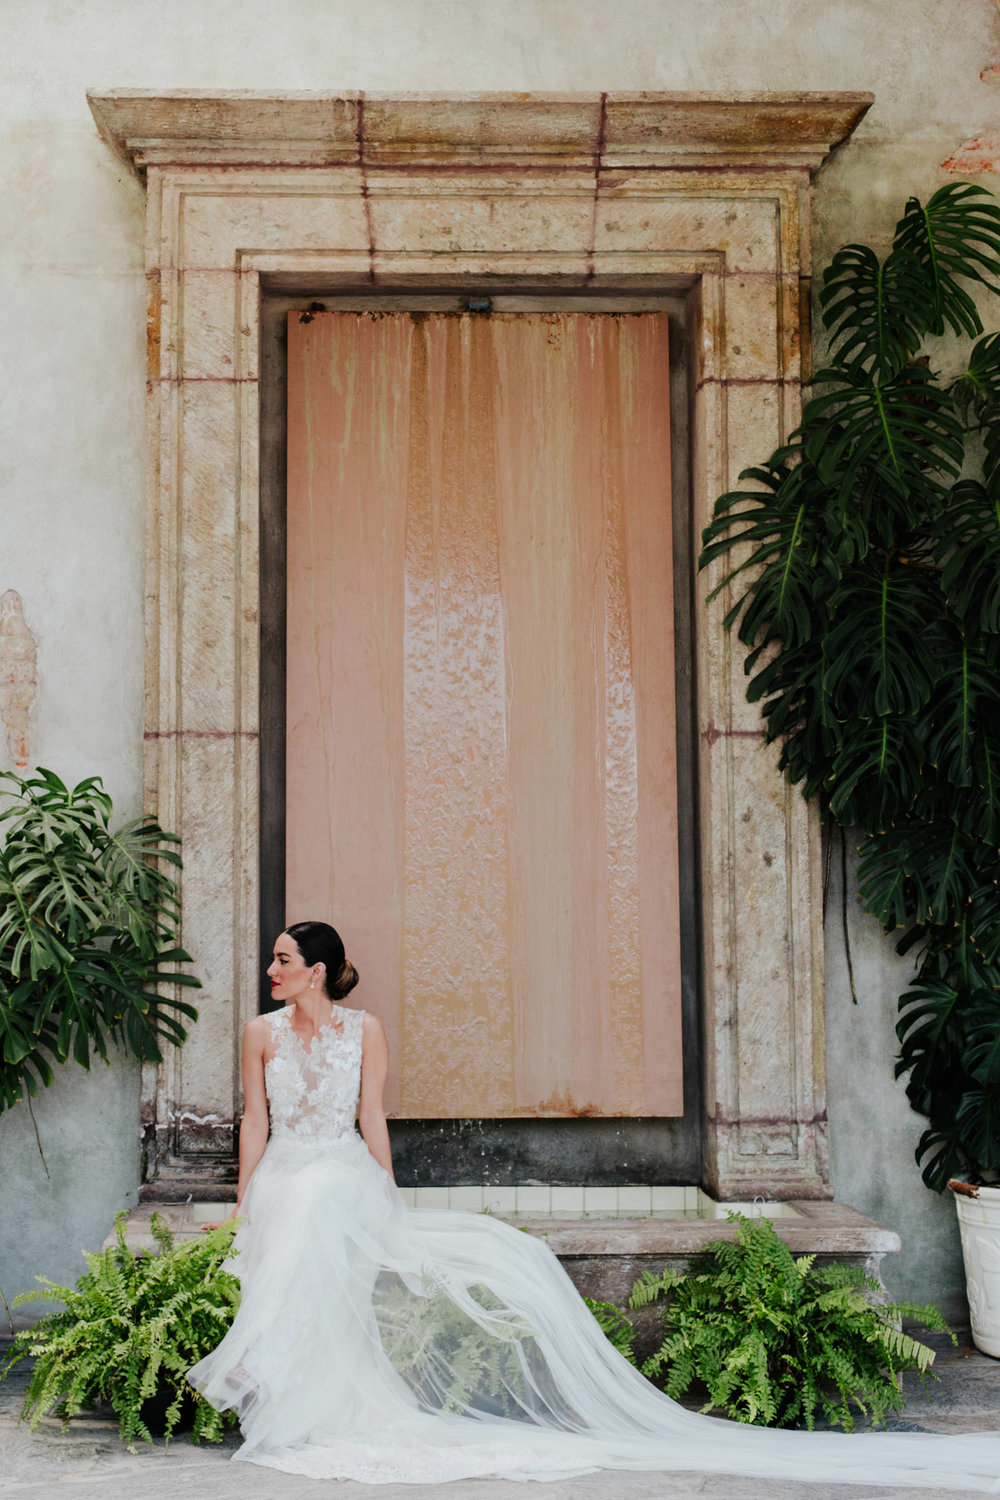 San-Miguel-de-Allende-Wedding-Photography-Parroquia-Instituto-Boda-Fotografia-Fer-Sergio-Pierce-Lifestyle-Photography0144.JPG